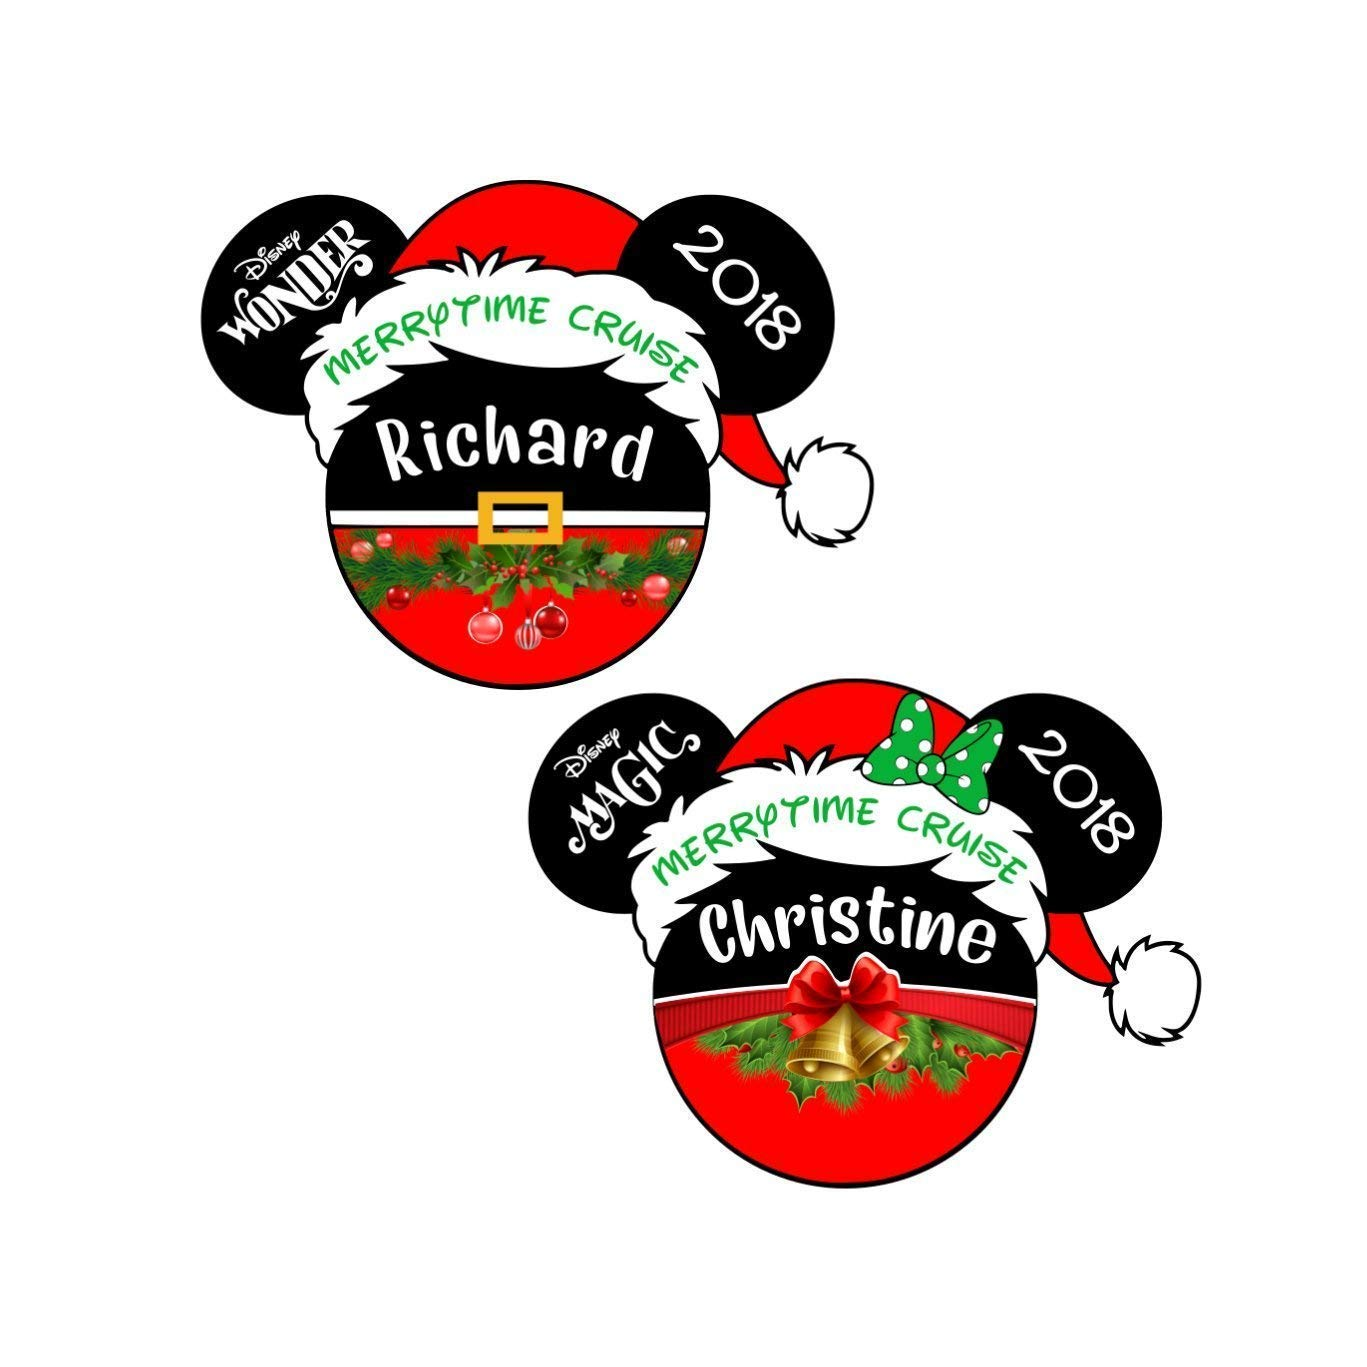 Christmas Disney Cruise Door Magnet FREE SHIPPING Disney Inspired Christmas Santa Magnet LARGE Personalized Merrytime Christmas Magnet